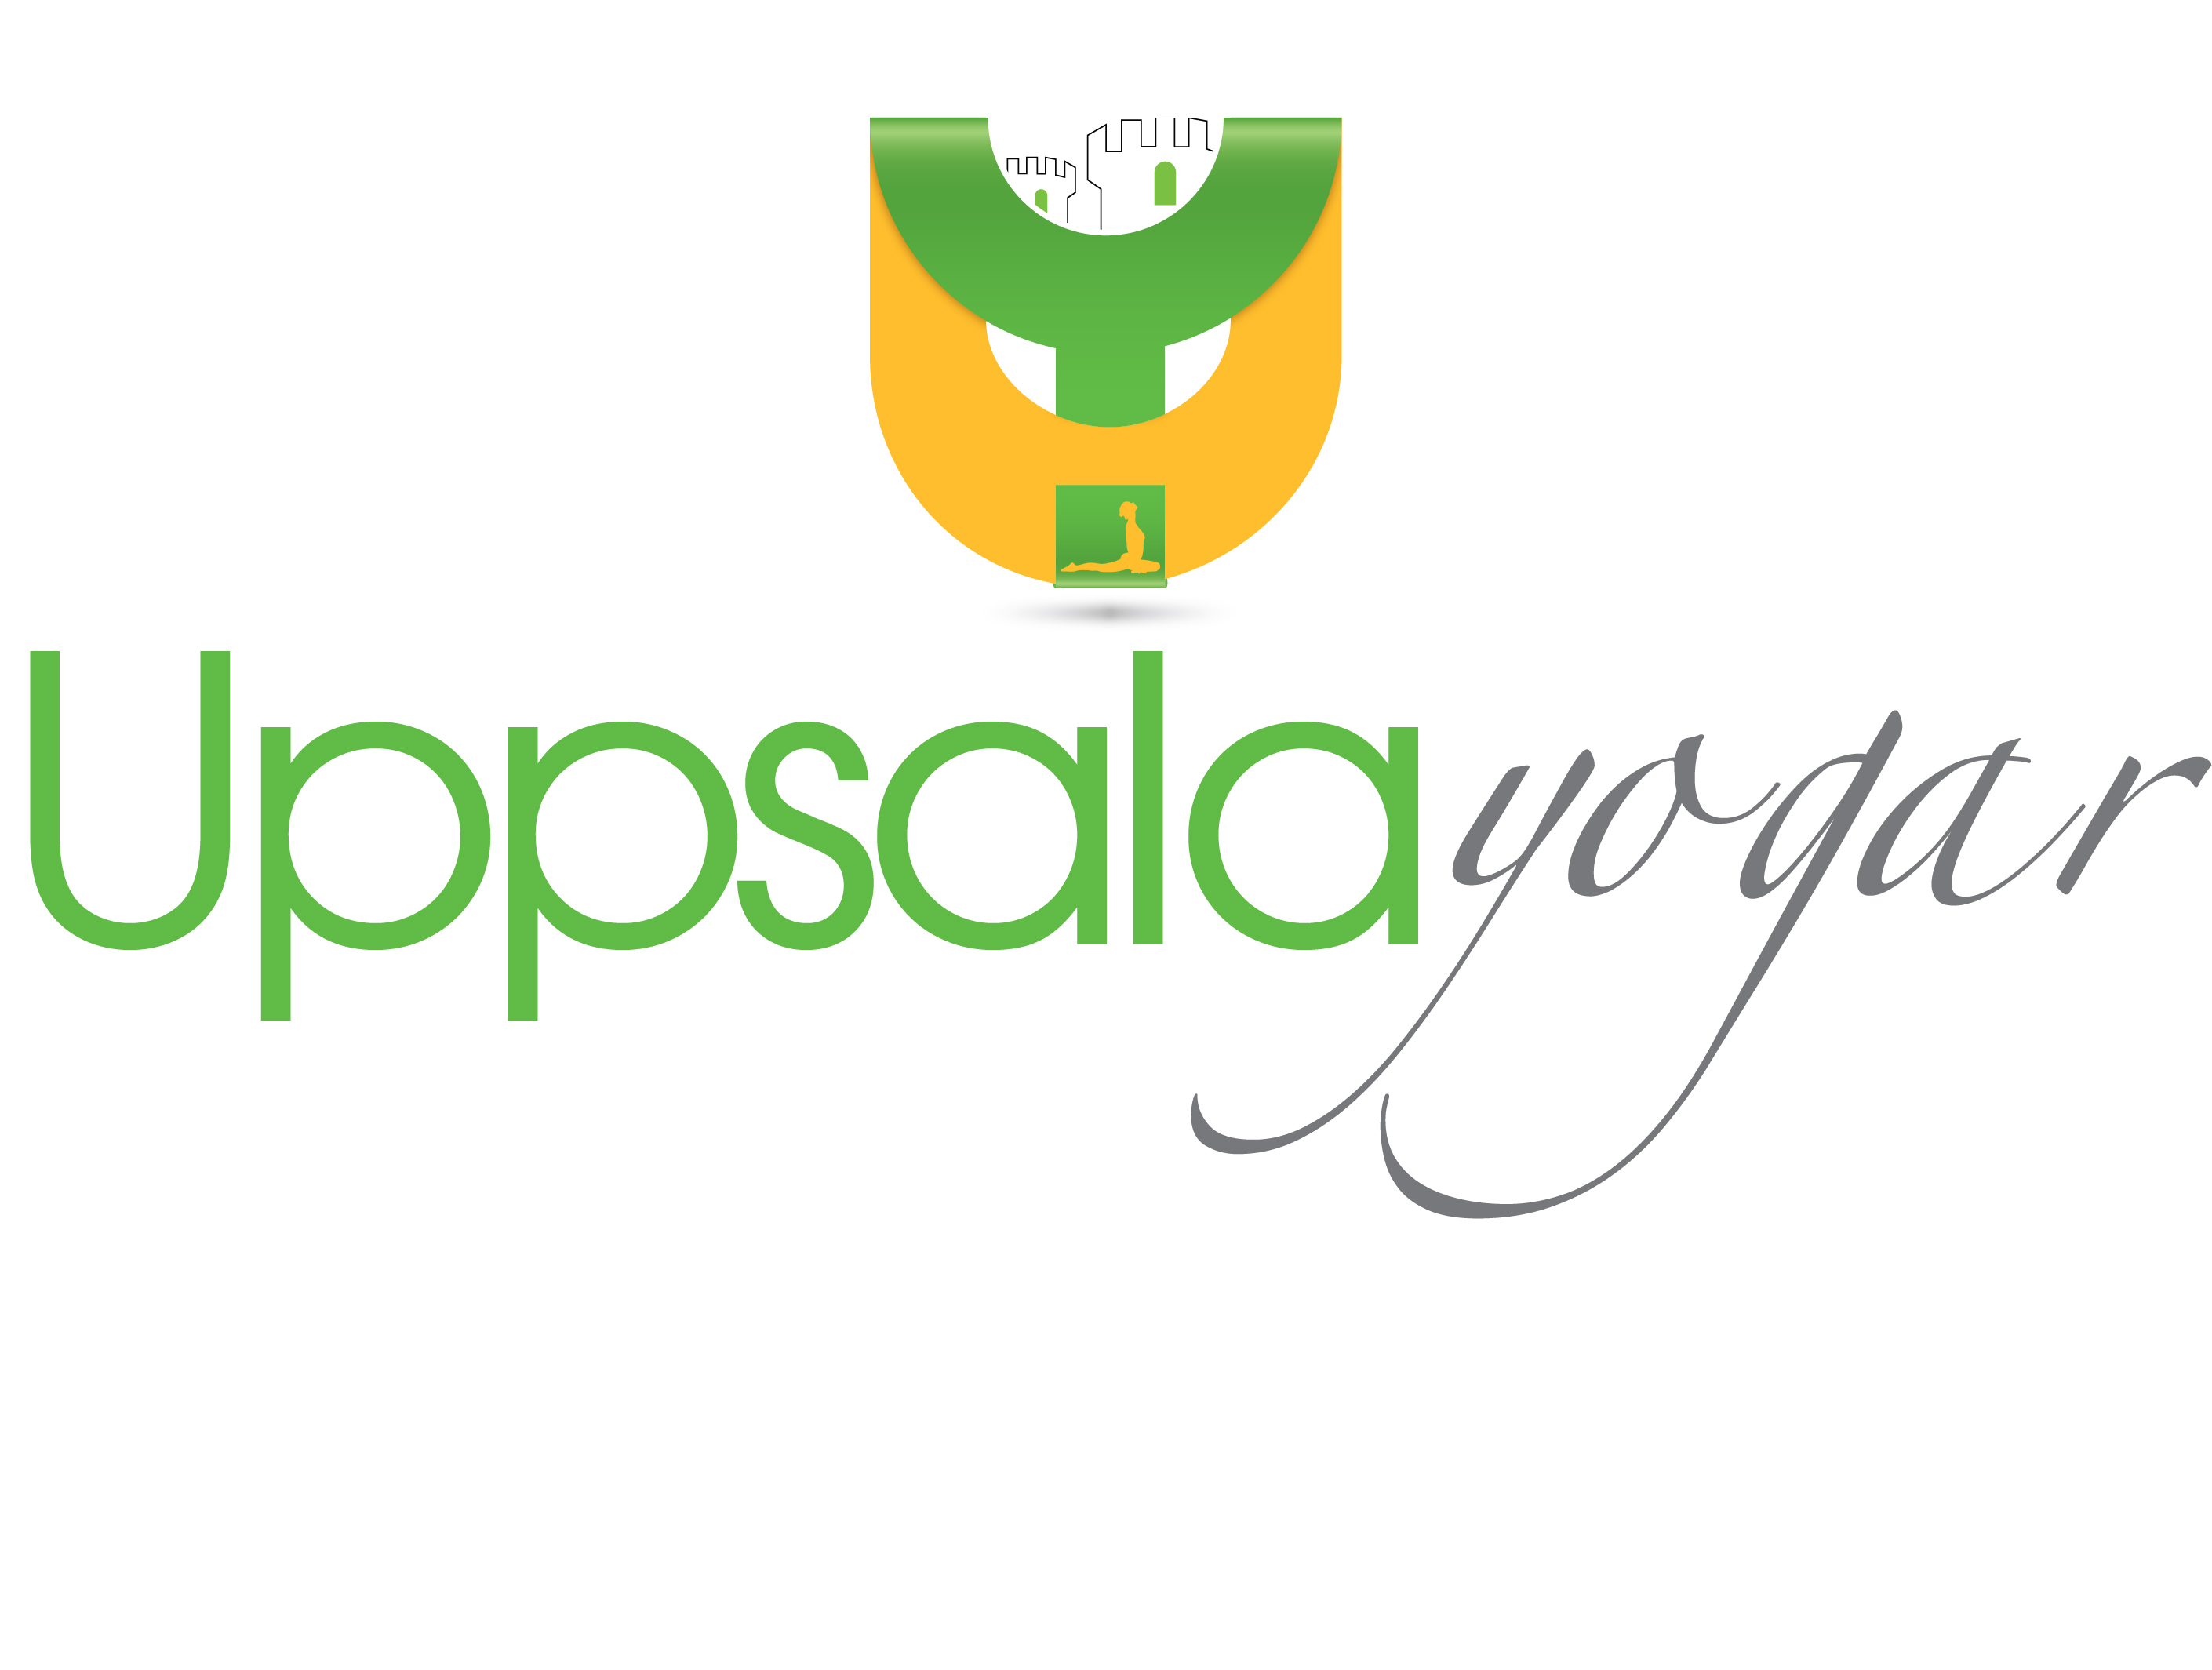 Logo Design by Waseem Haider - Entry No. 28 in the Logo Design Contest Unique Logo Design Wanted for Uppsala Yogar.